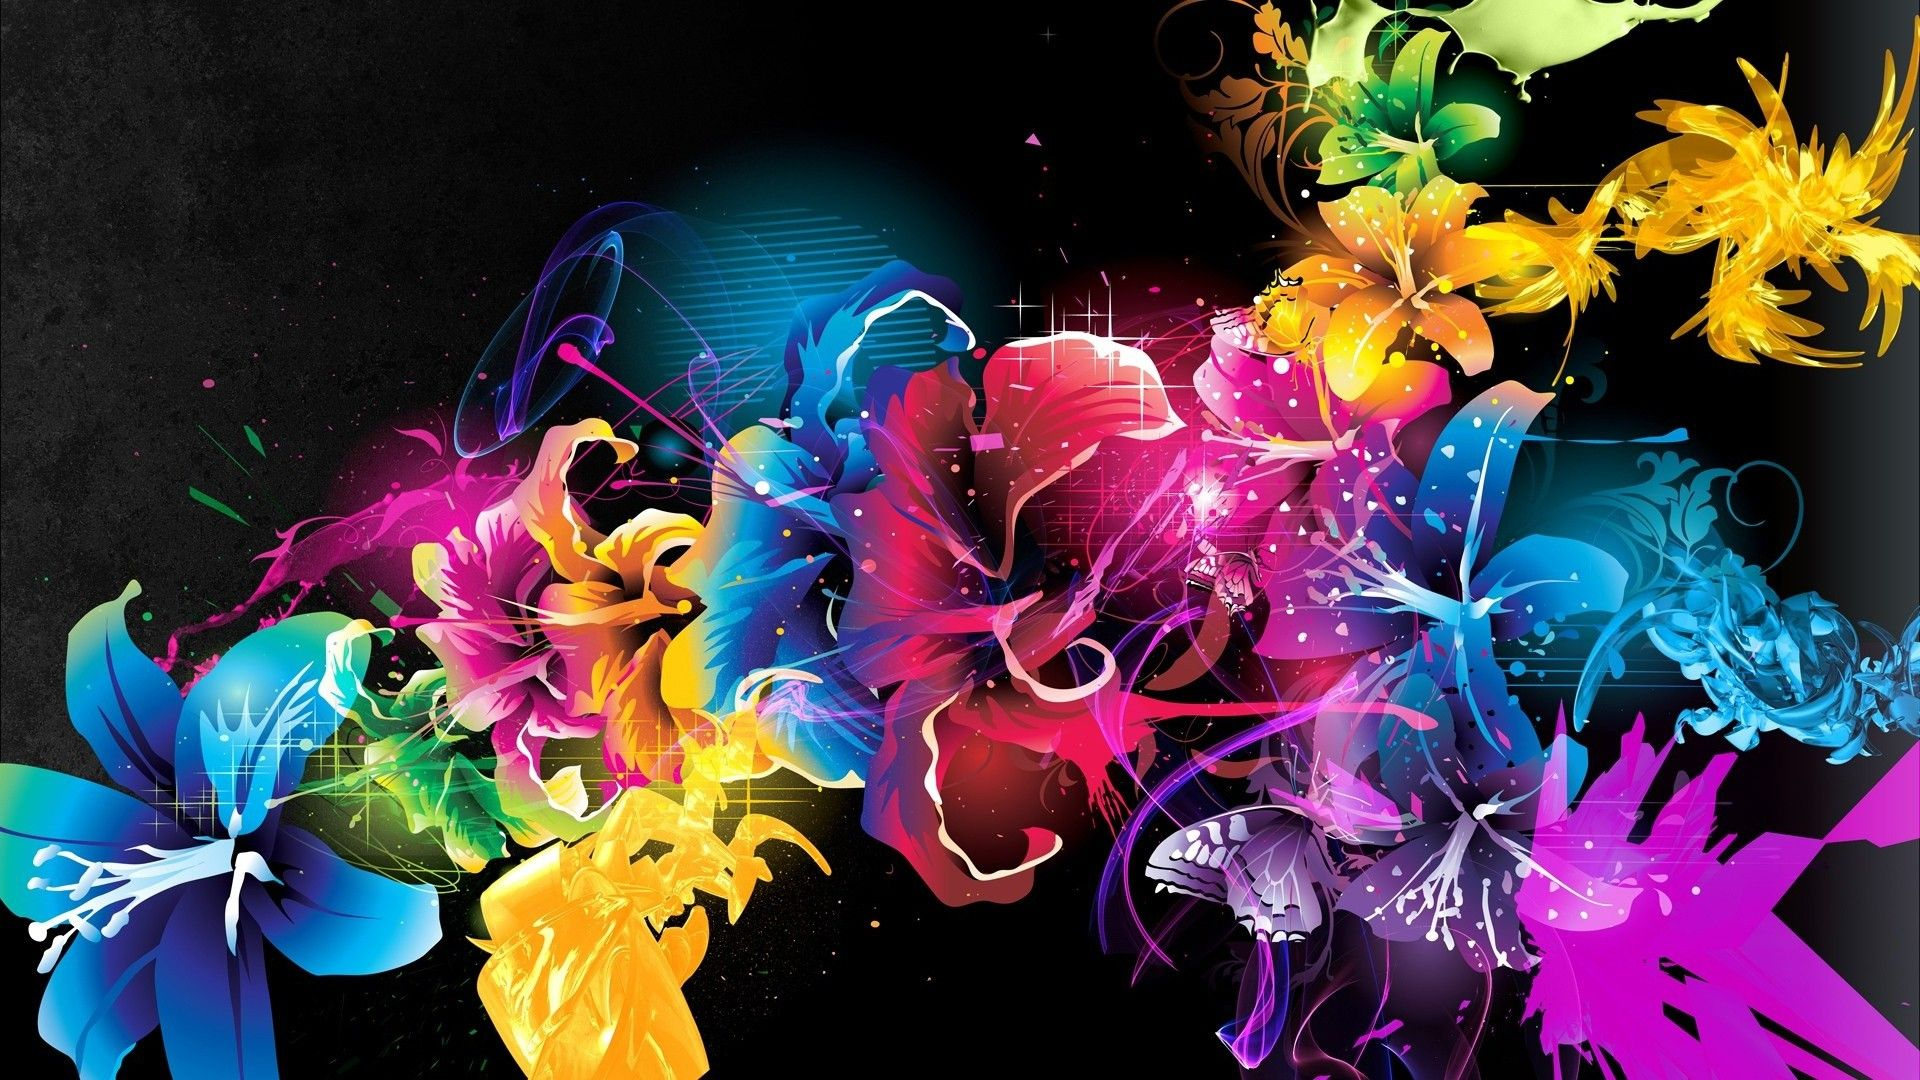 Hd wallpaper quality - Flower Vector Wallpaper Colorful Image High Quality Pc Dekstop Hd Desktop Backgrounds